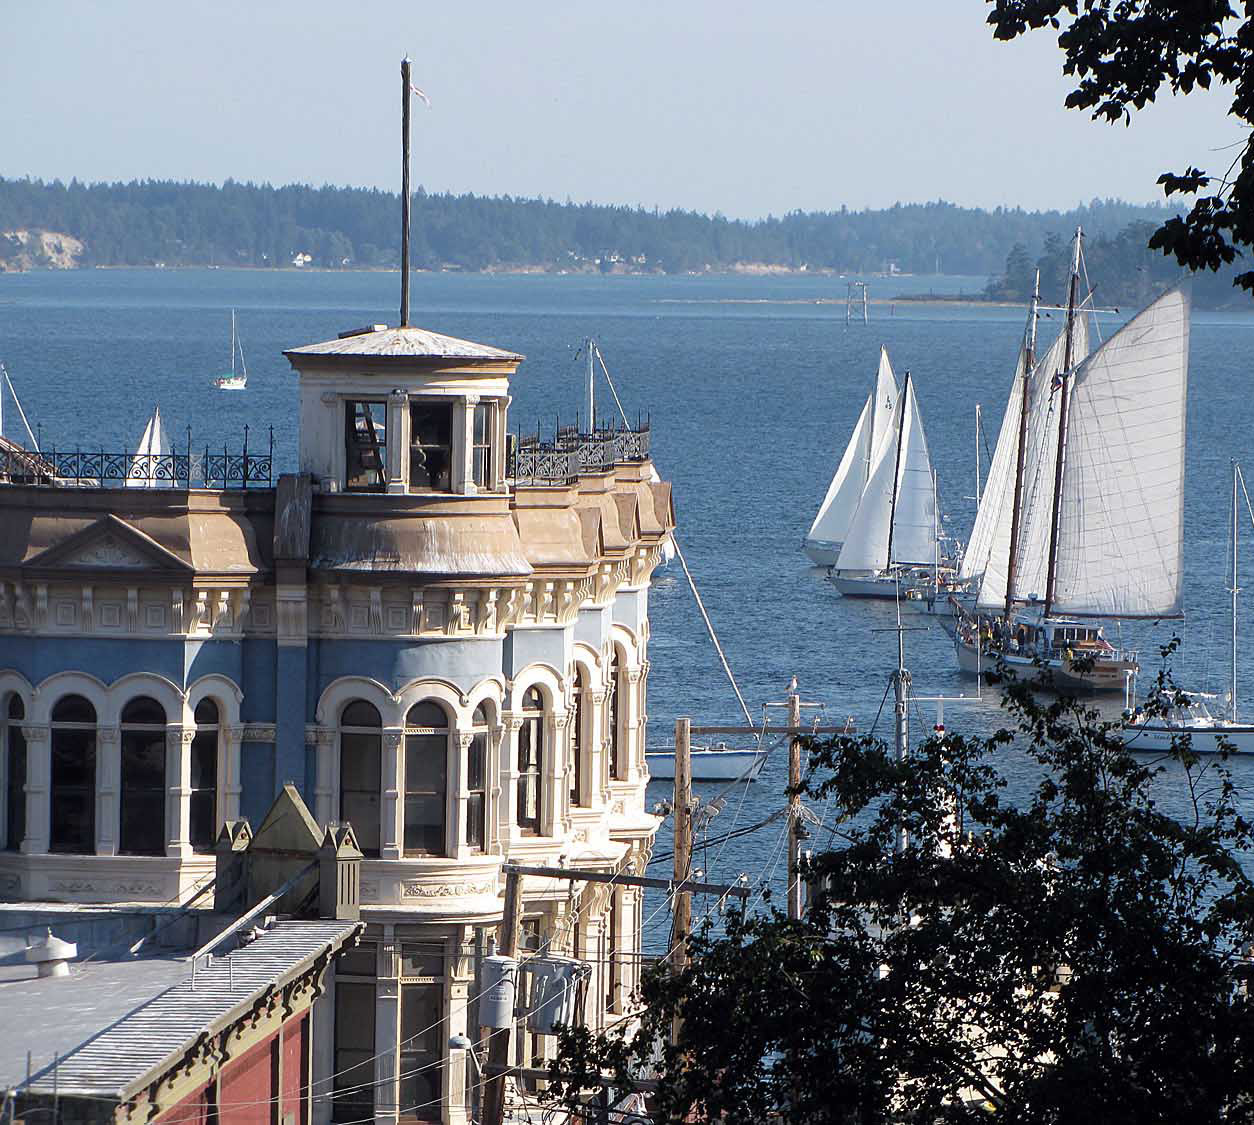 Hastings - port townsend boat view